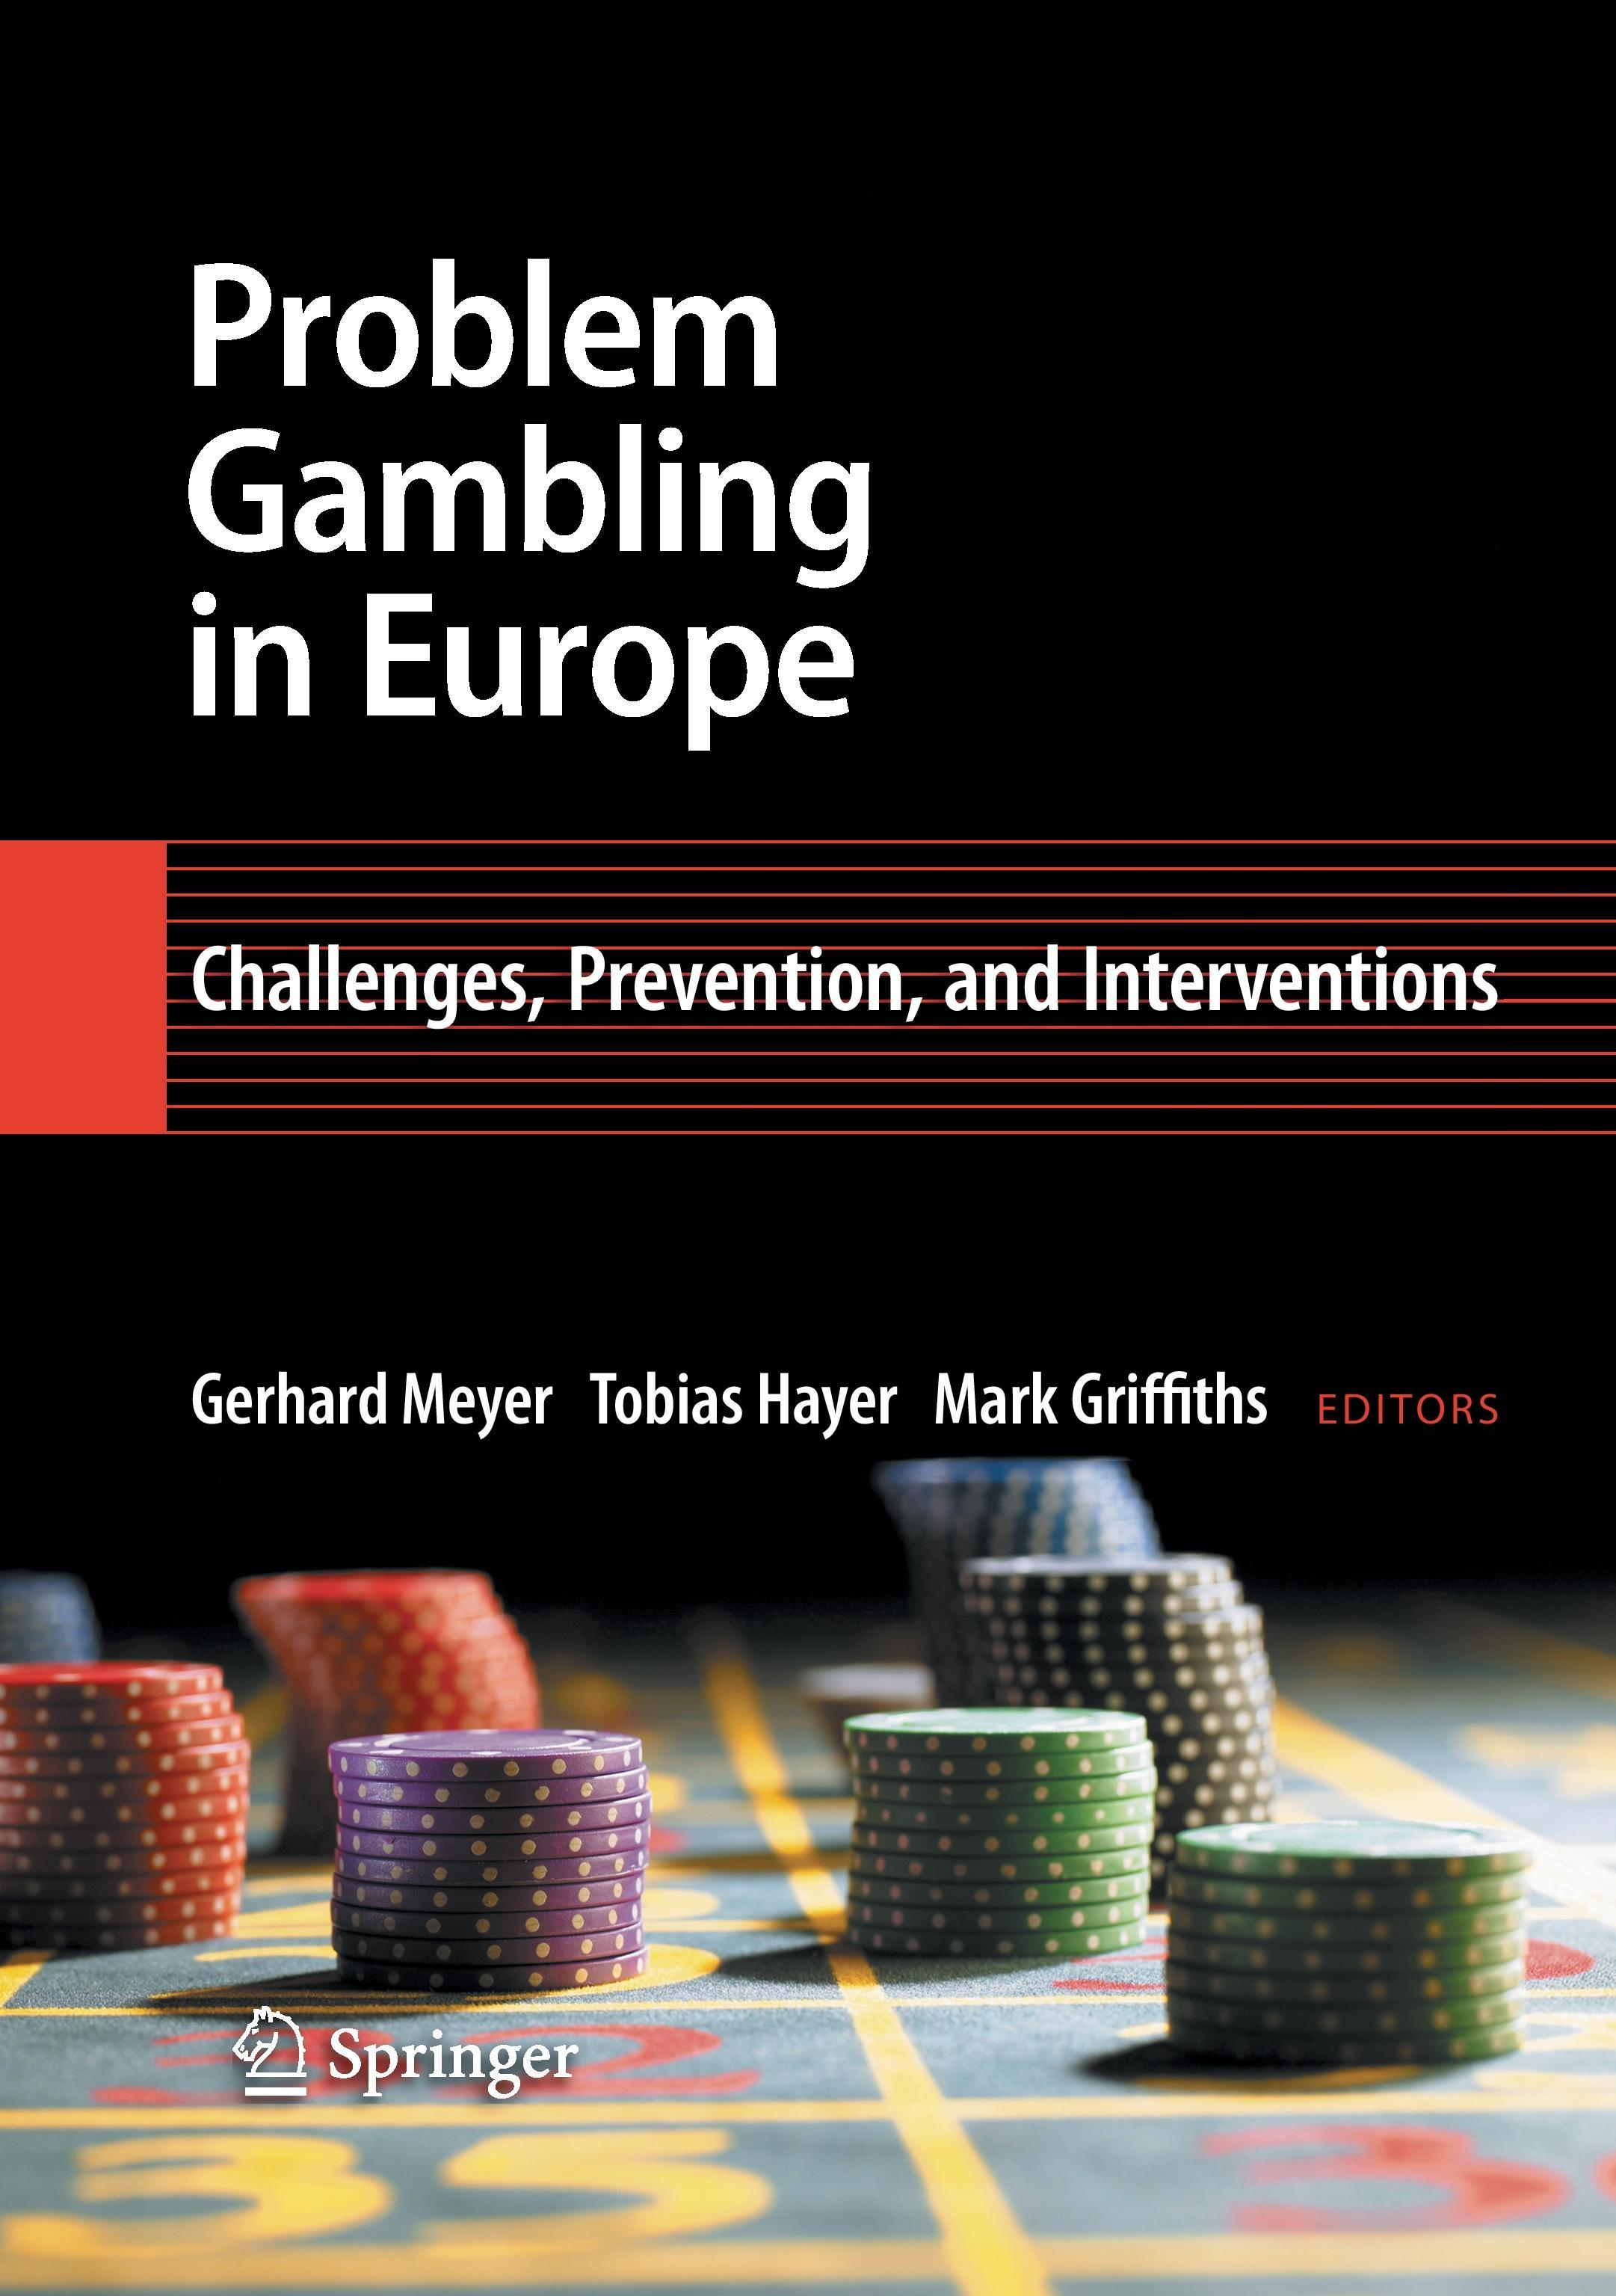 Problem-Gambling-in-Europe-Challenges-Prevention-and-Interventions-Meyer